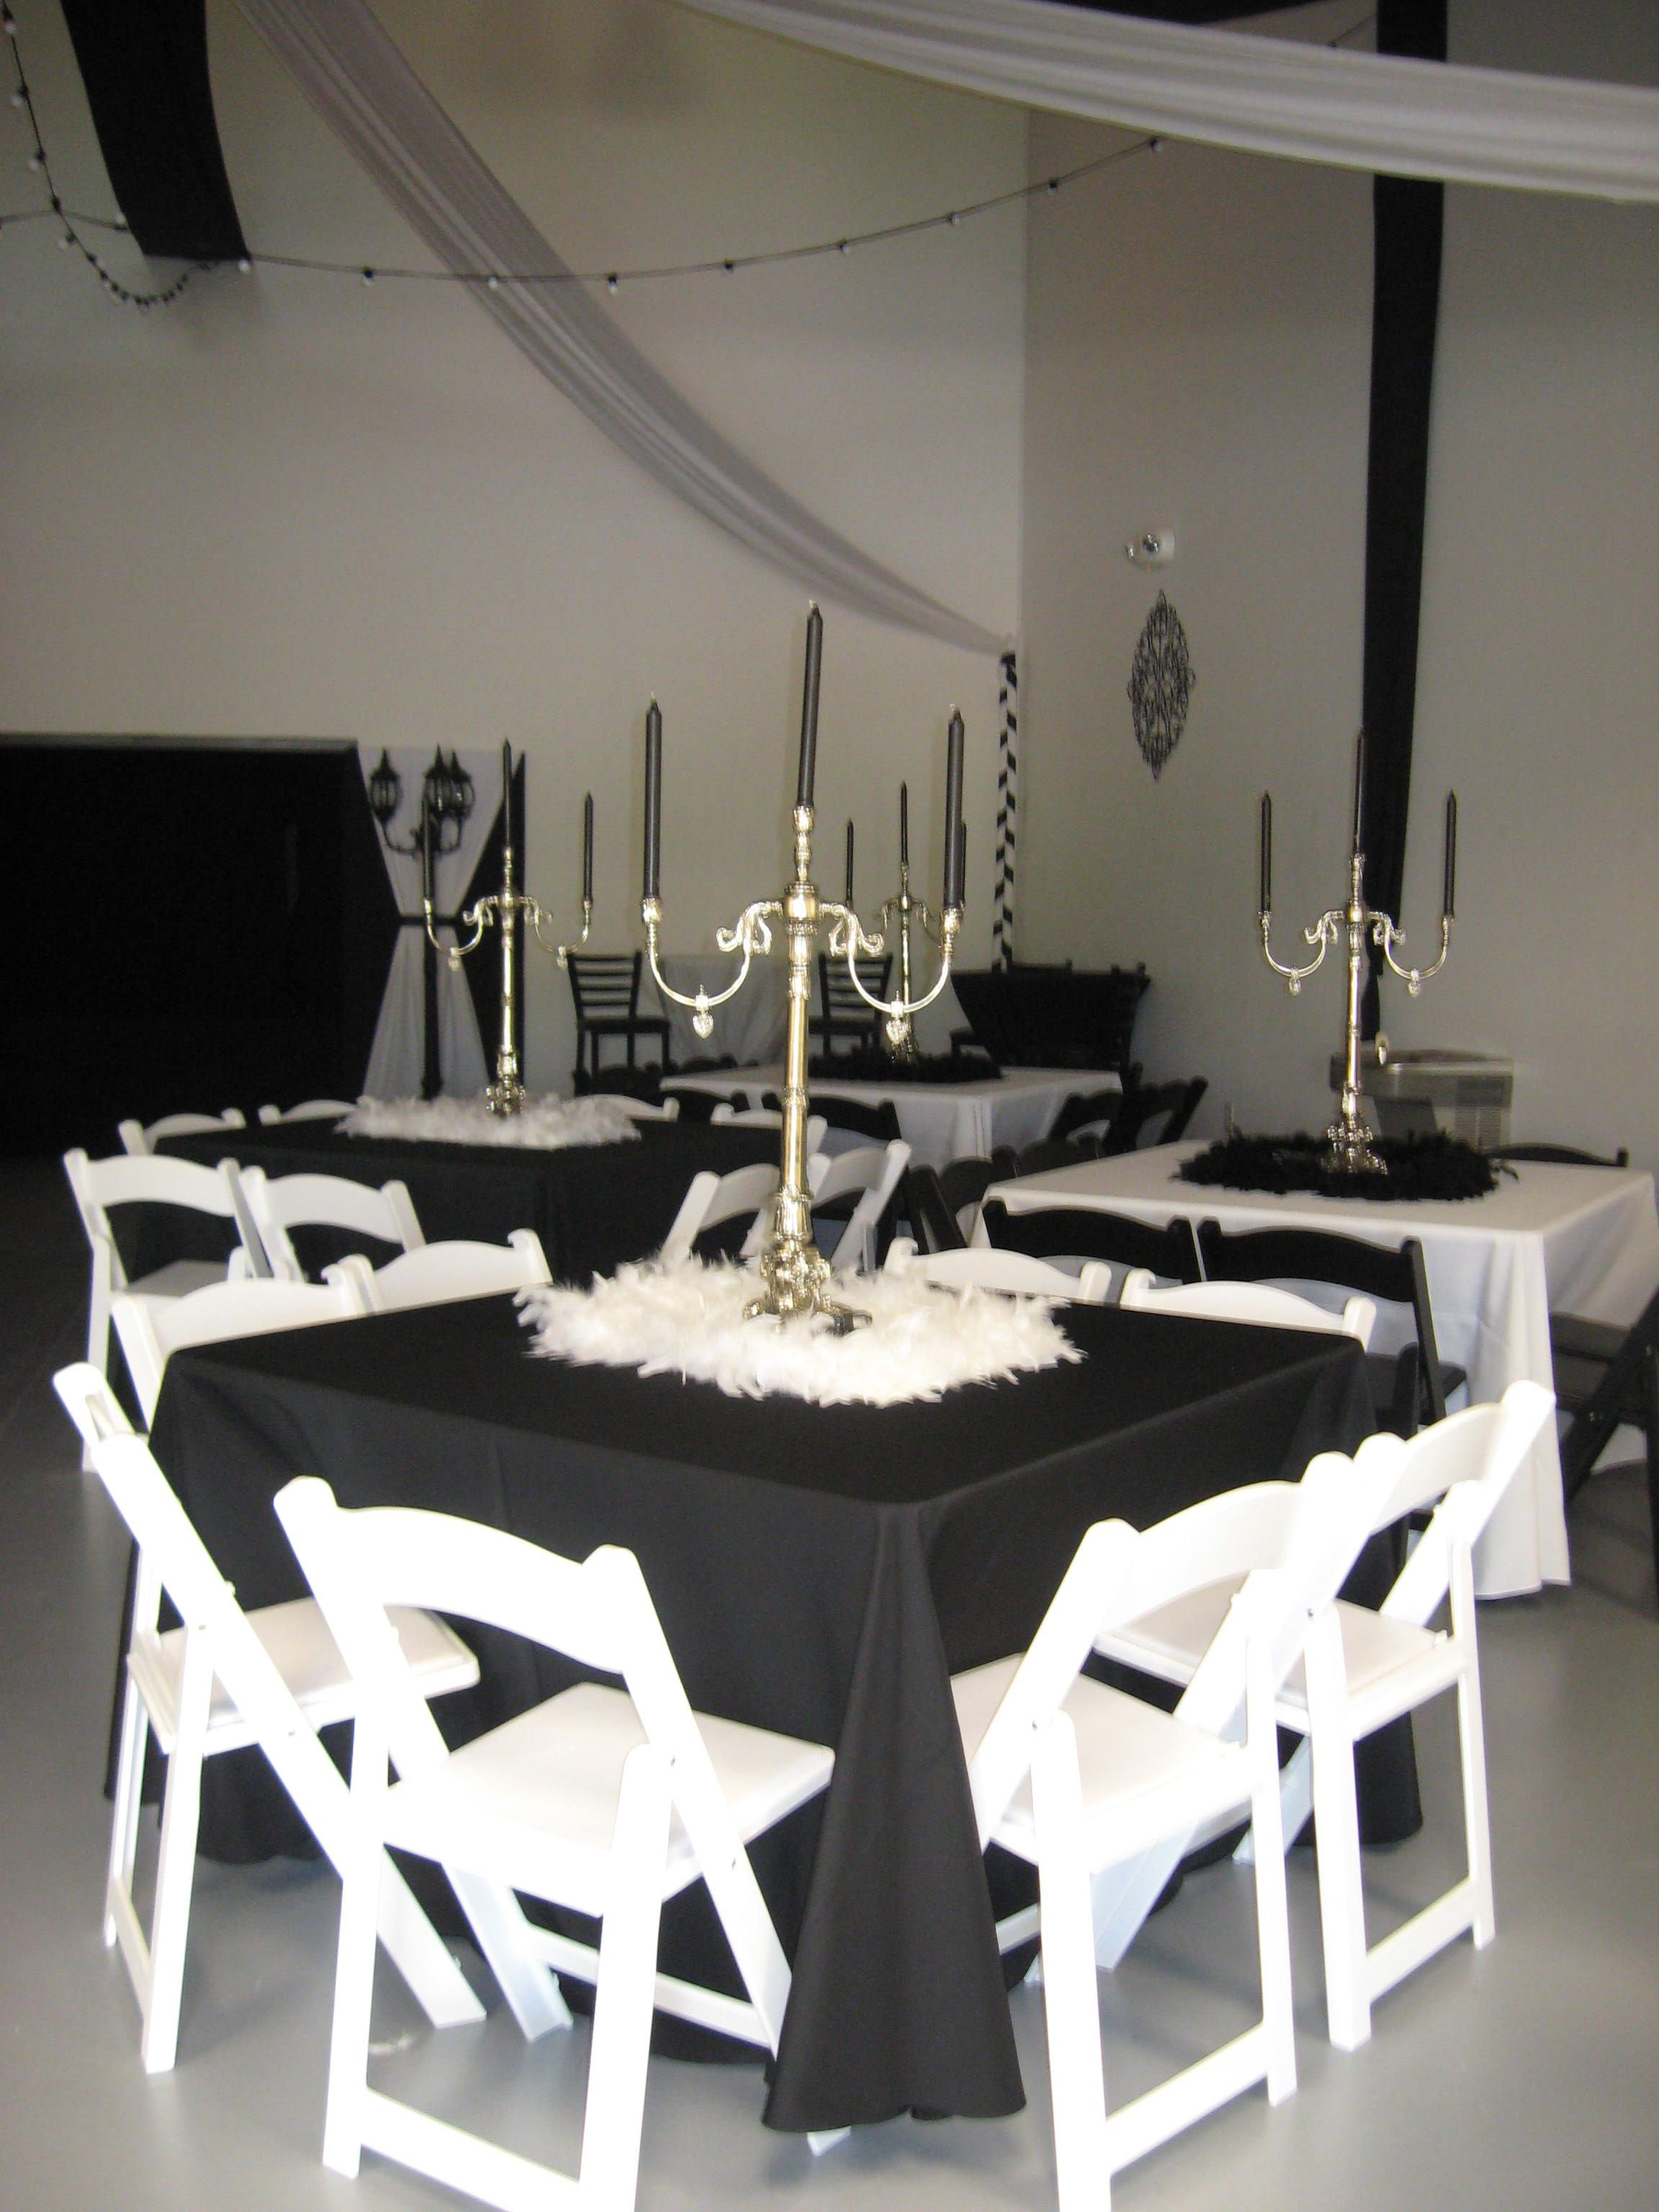 Rental Chairs And Tables Atlanta Rental Black White Resin Chair Table Linen Elegant